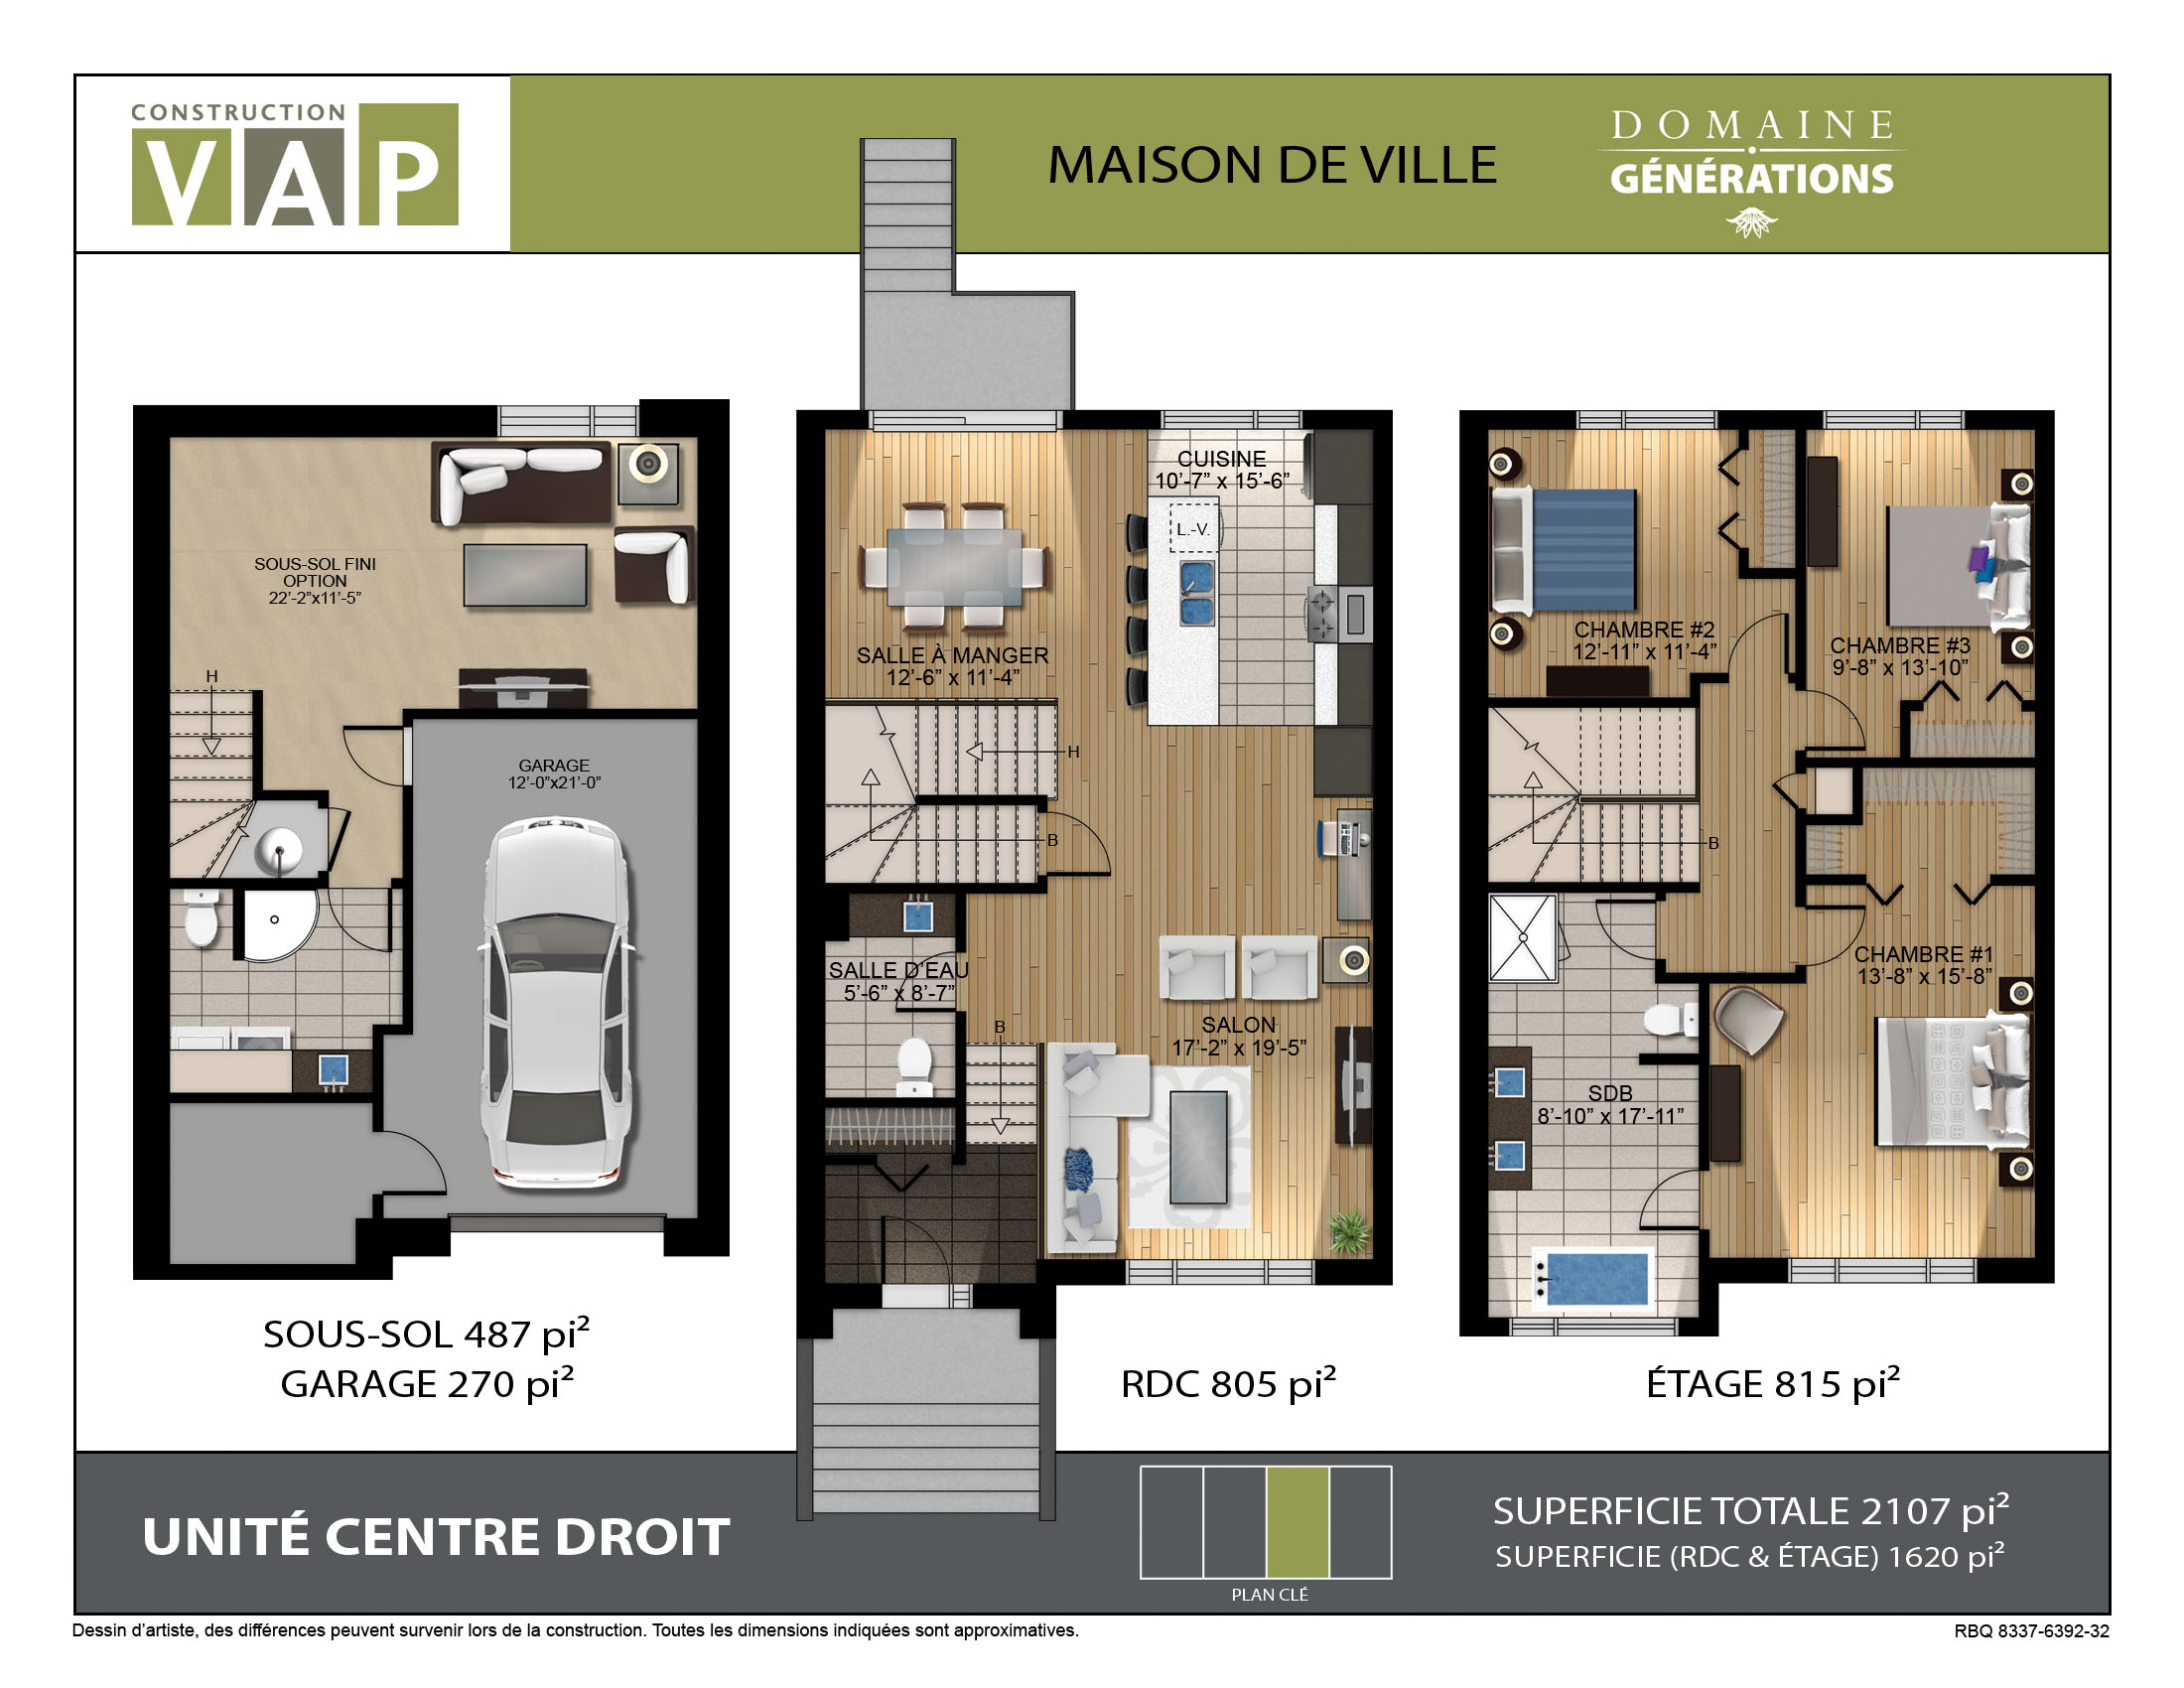 Plan maison de ville great pdf with plan maison de ville for Plans de maison de ville